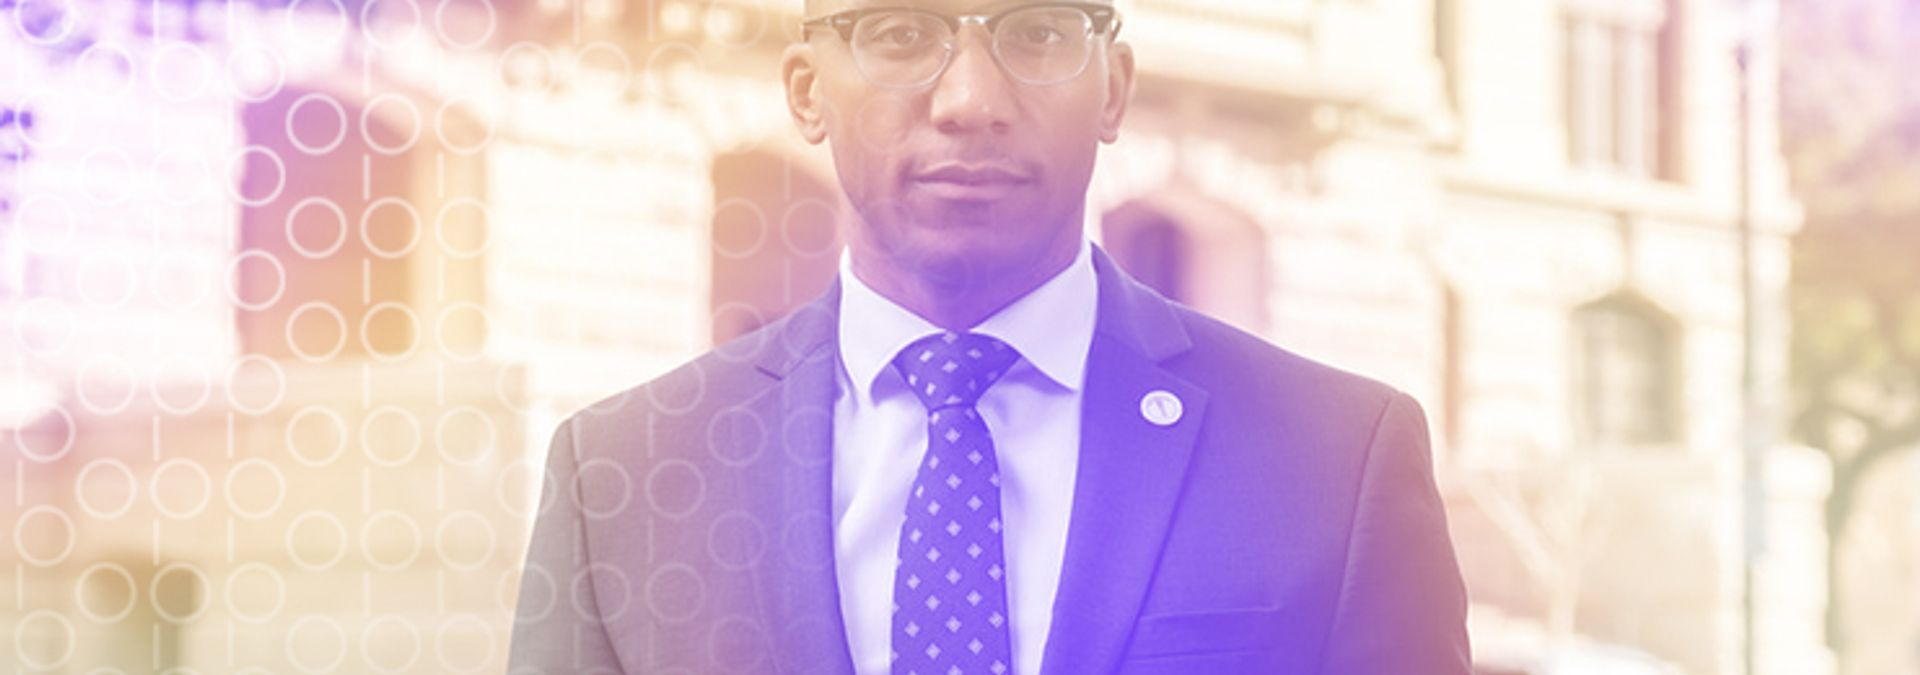 Christian Menefee was elected as Harris County Attorney in 2020.